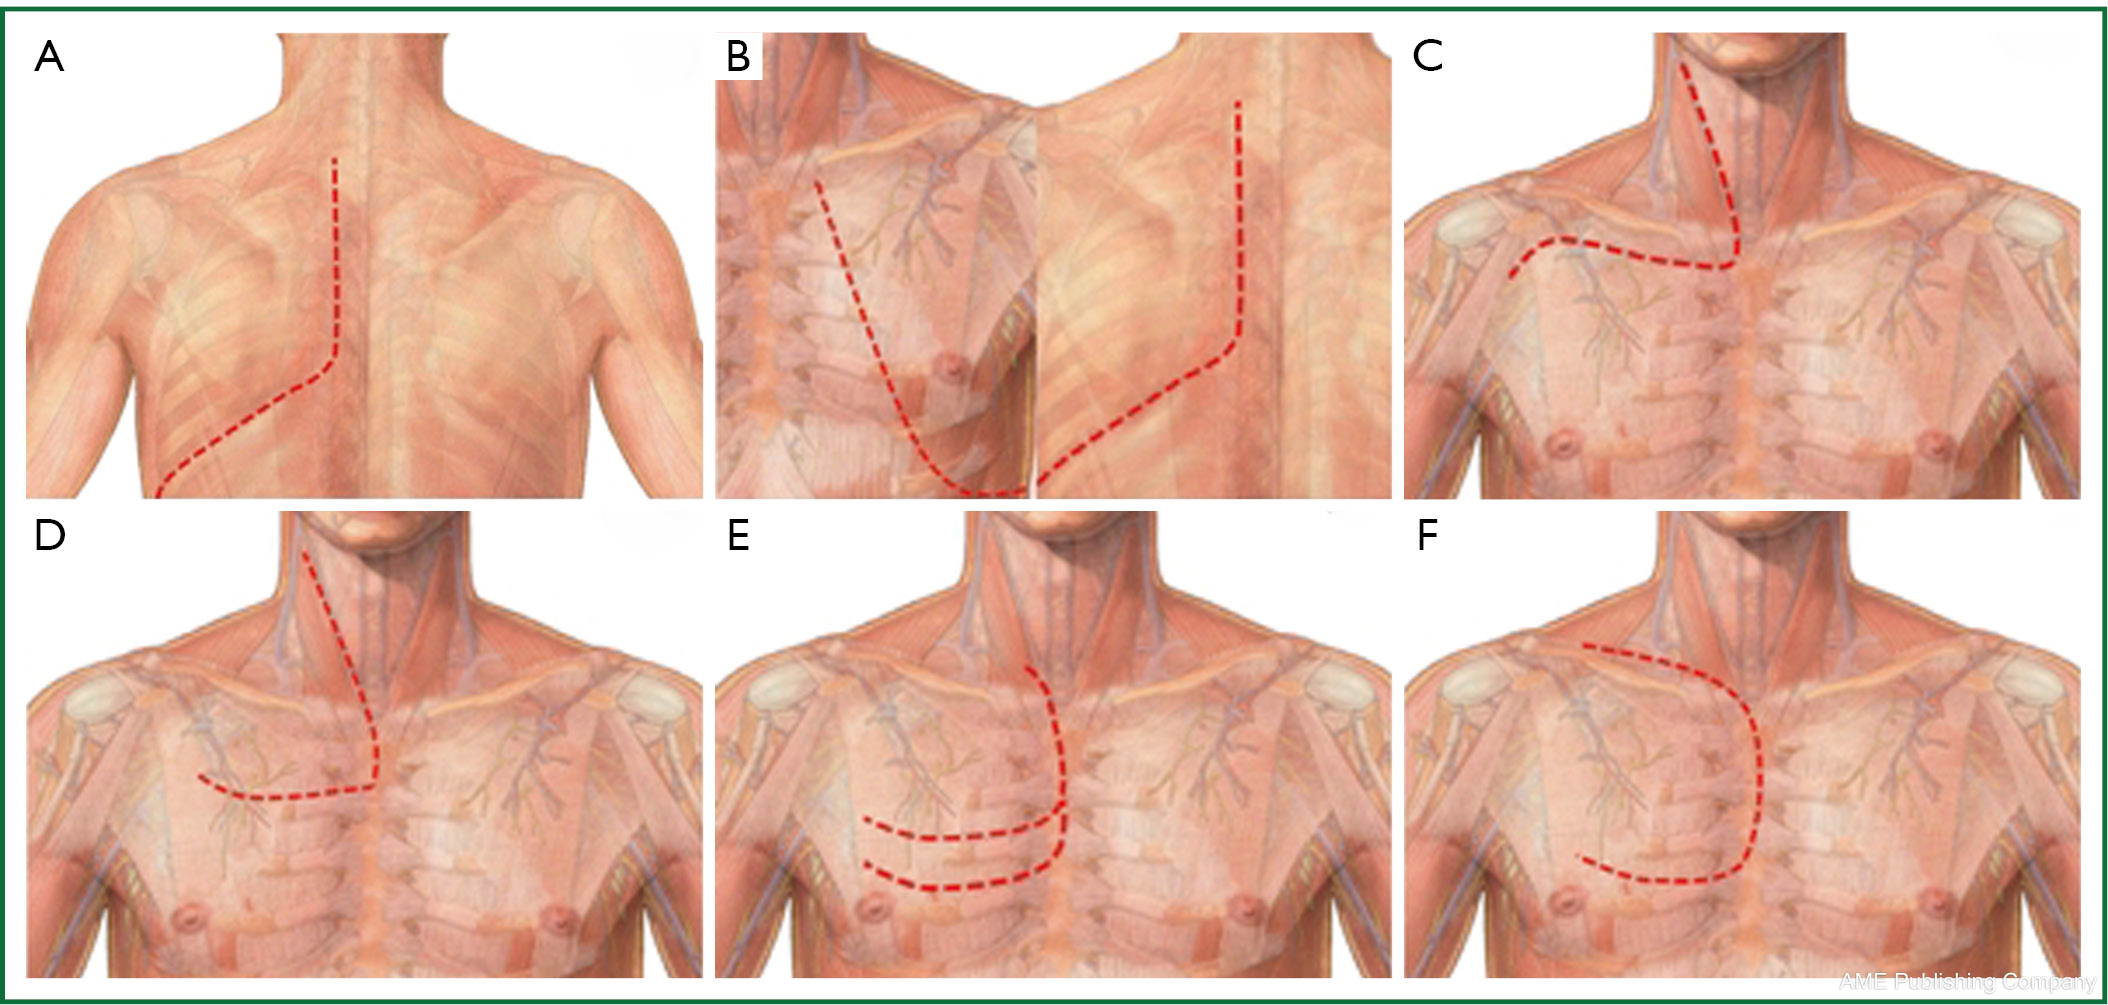 Can vena cava syndrome be correlated to a Pancoast-Tobias tumour?